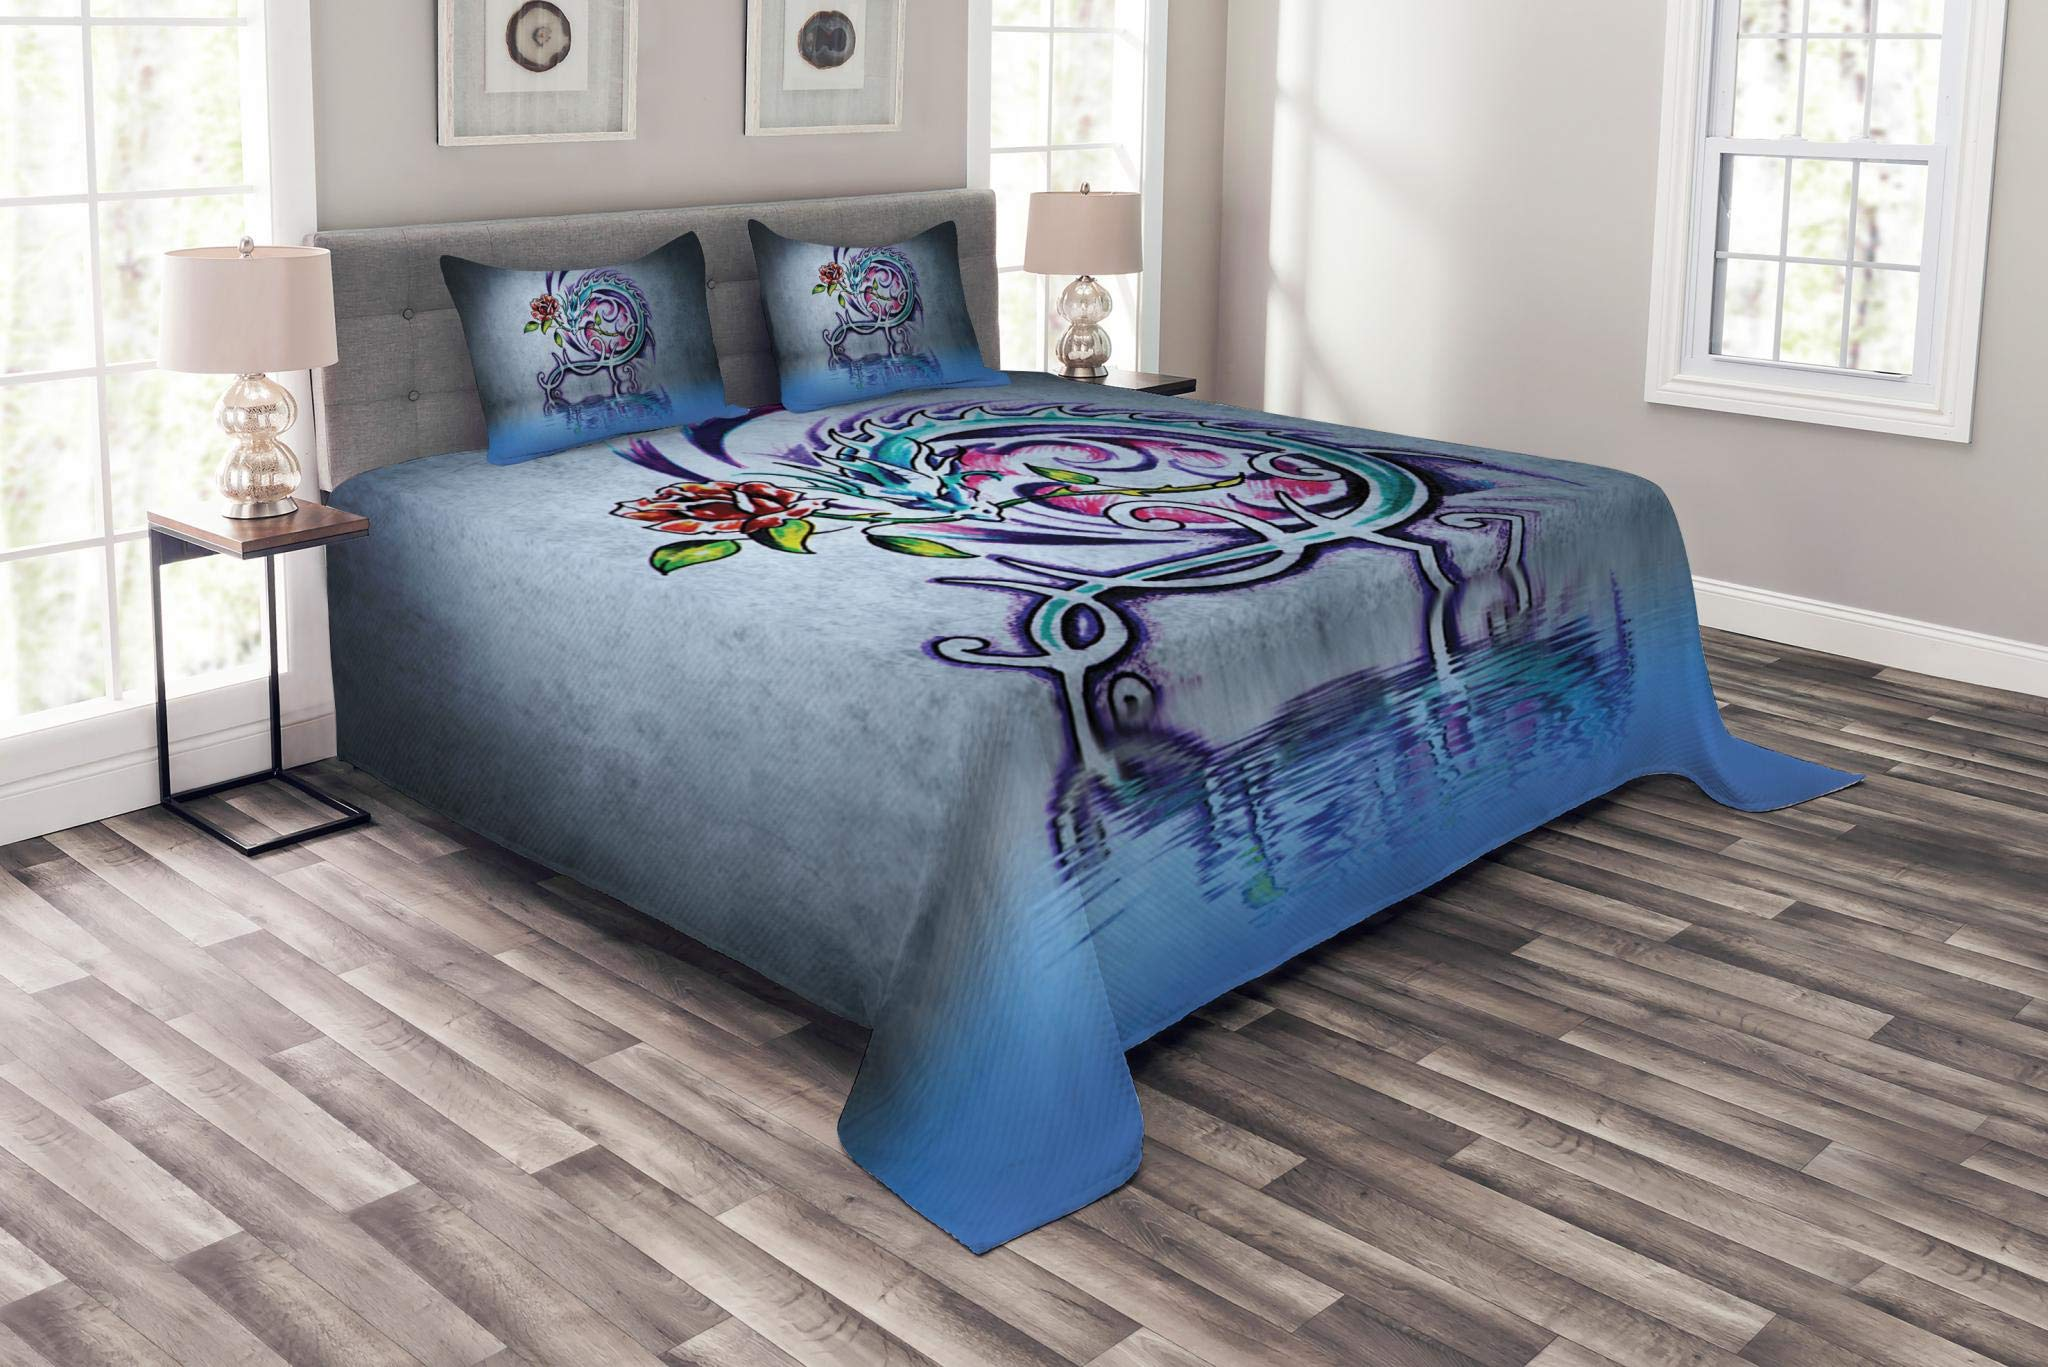 Lunarable Dragon Bedspread Set Queen Size, Flower and Swirling Twiggy Dragon Figure on Wall Graffiti Inspired Art Red Rose and Water, Decorative Quilted 3 Piece Coverlet Set with 2 Pillow Shams, Multi